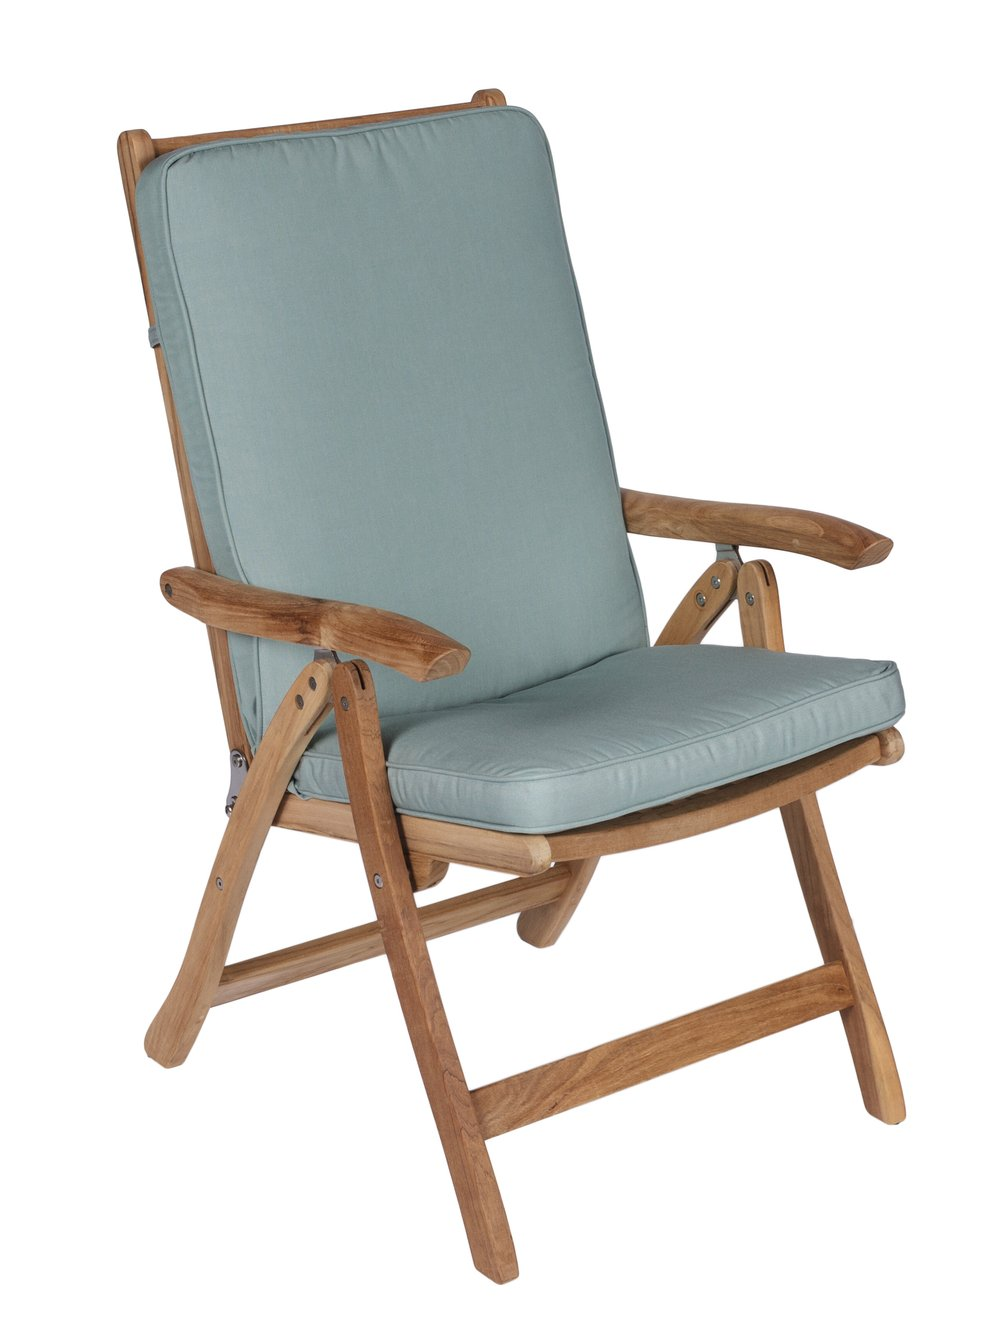 ROYAL TEAK COllection -  Folding Estate Chair   Sunbrella Cushion Included : Canvas Spa, Navy, White & Granite